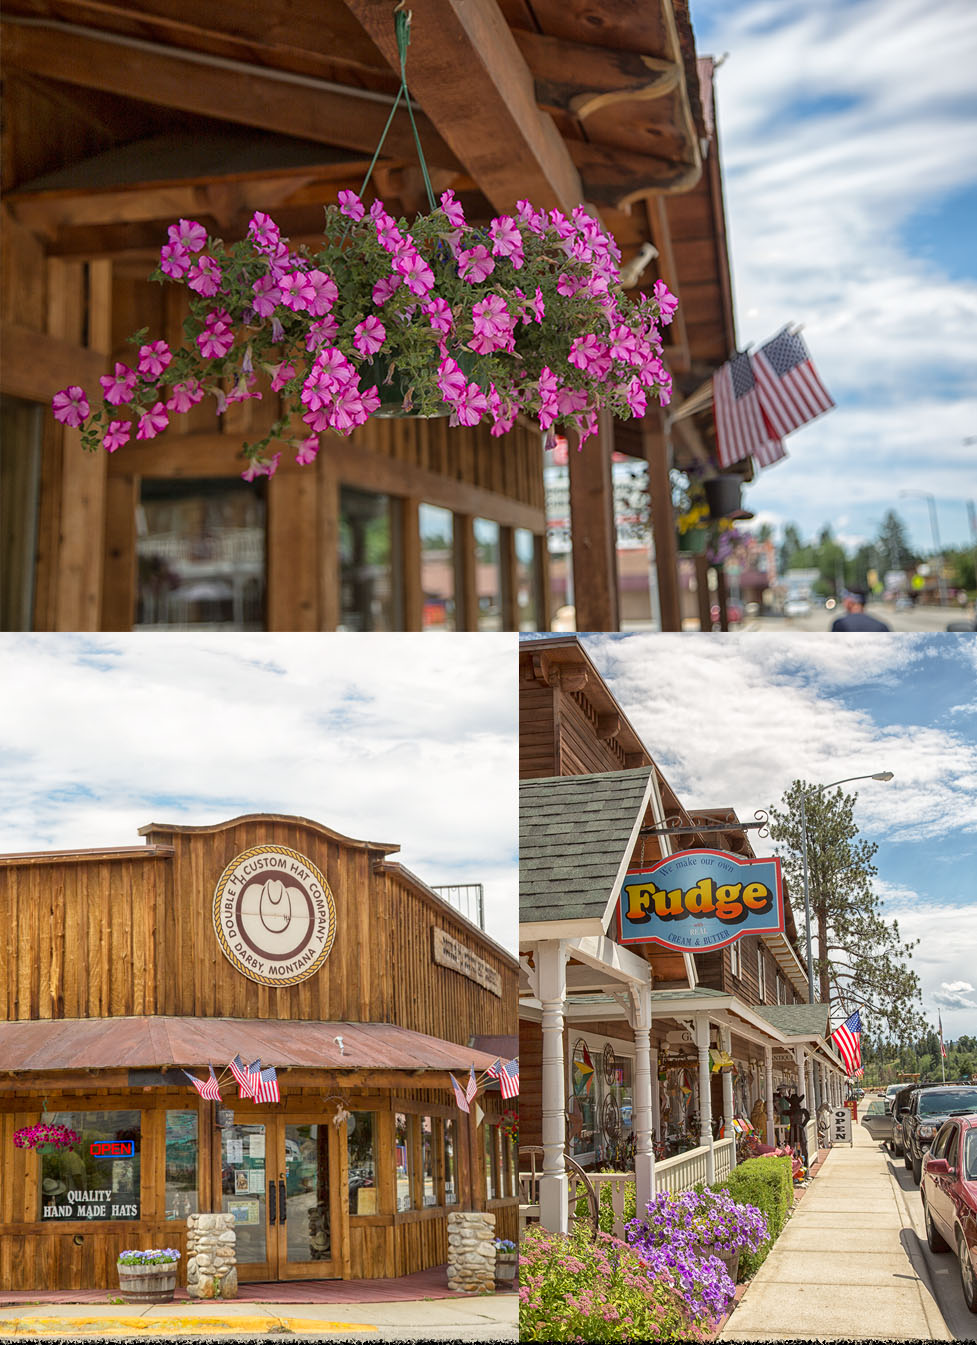 The sweet town of Darby, MT